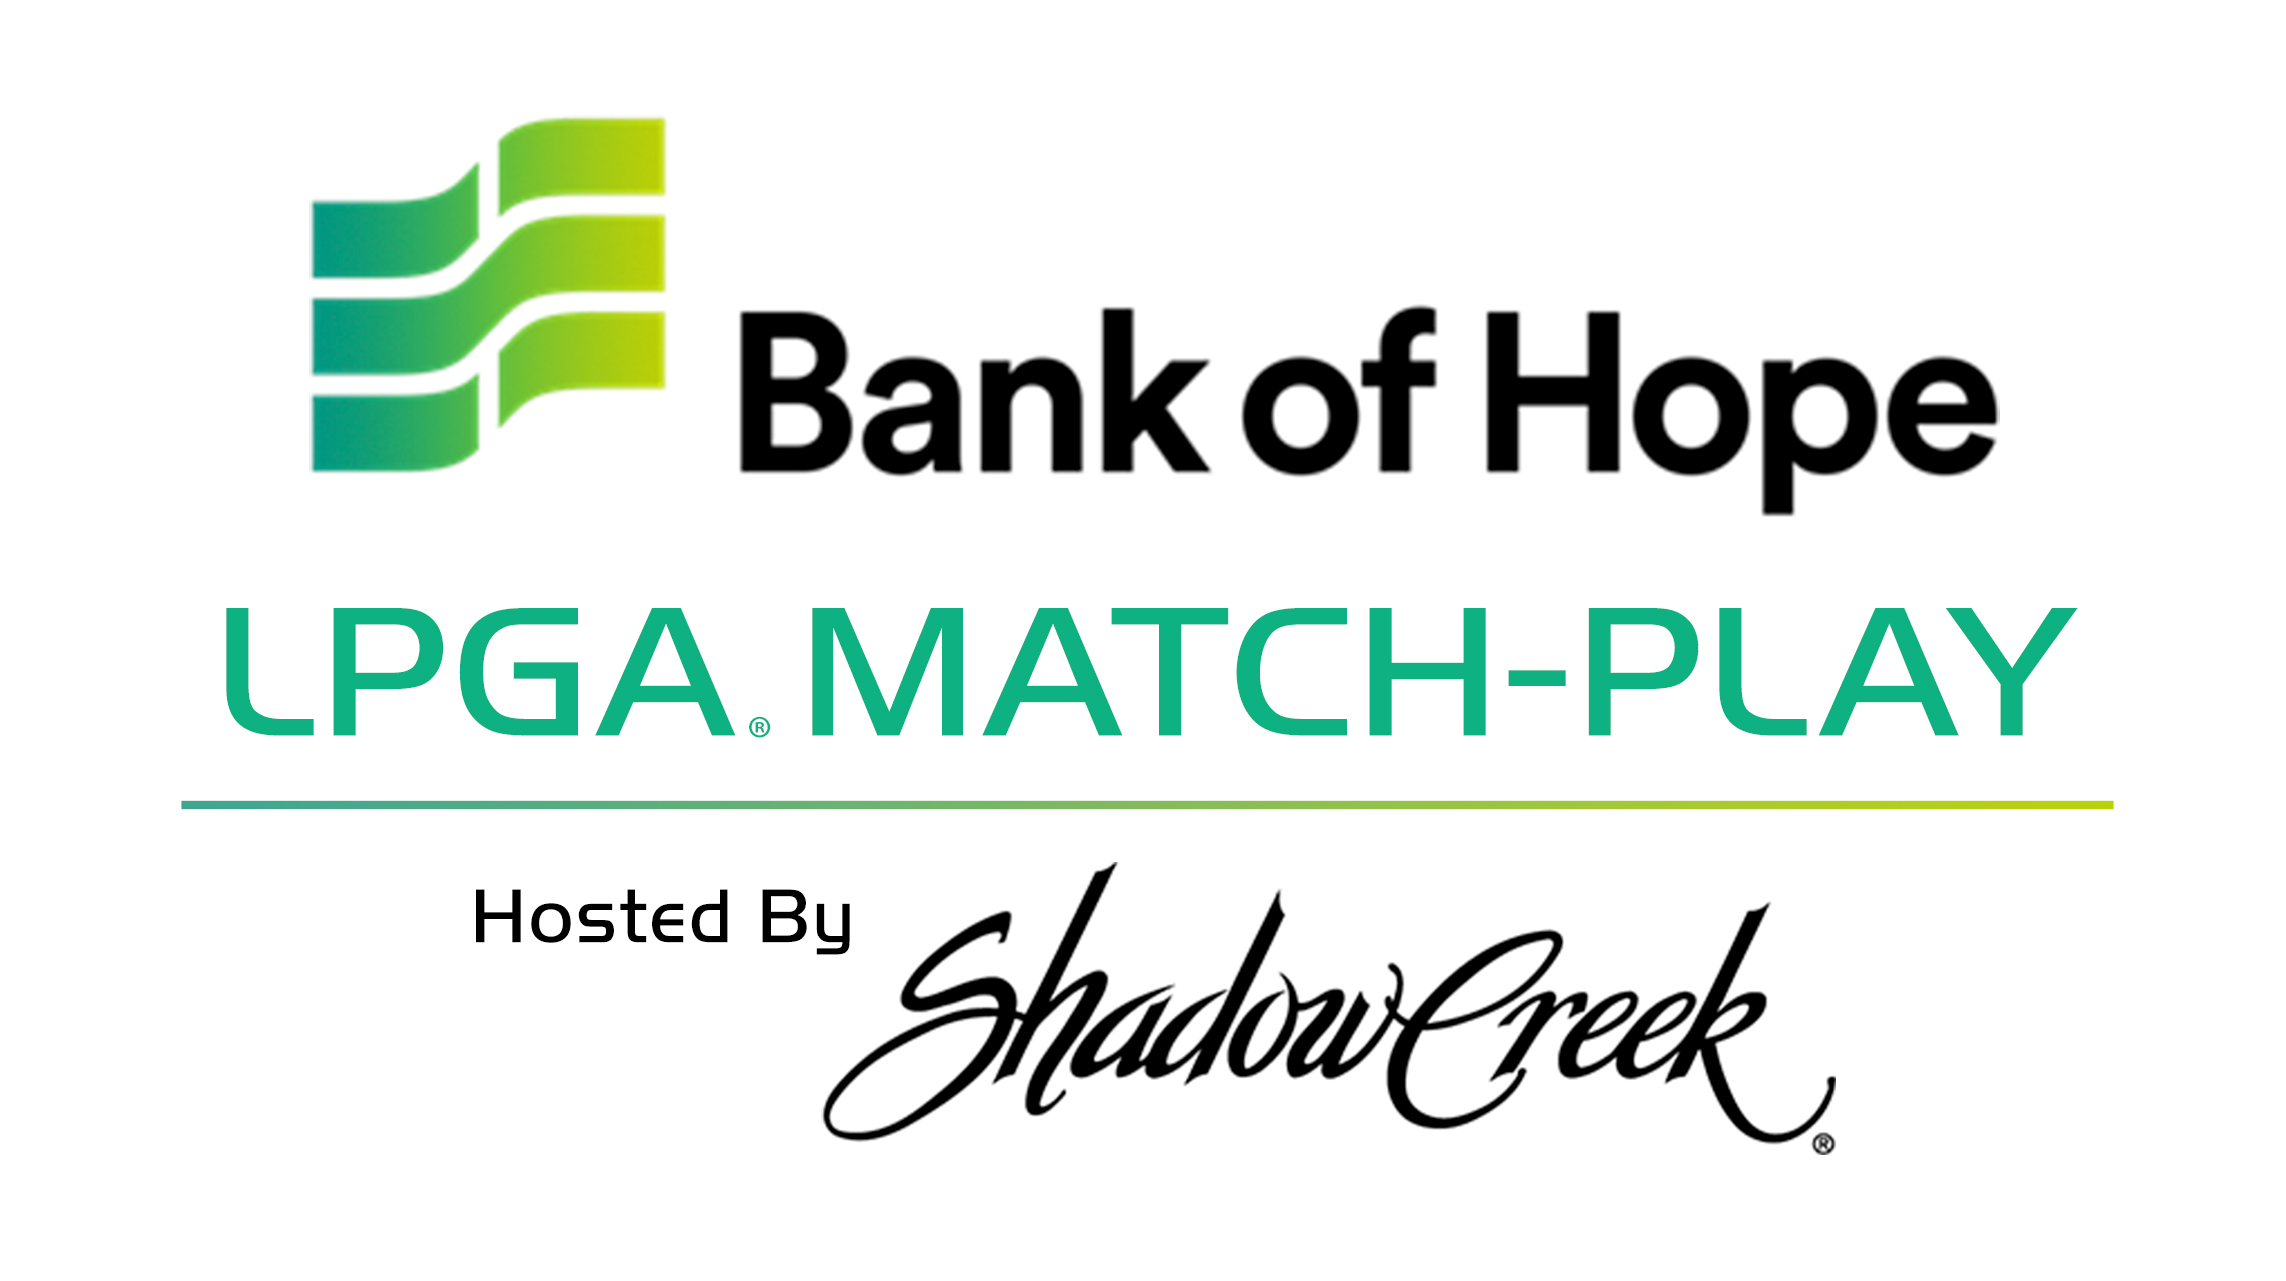 sas21-logomu—bank-of-hope-match-play-at-shadow-creek—v5